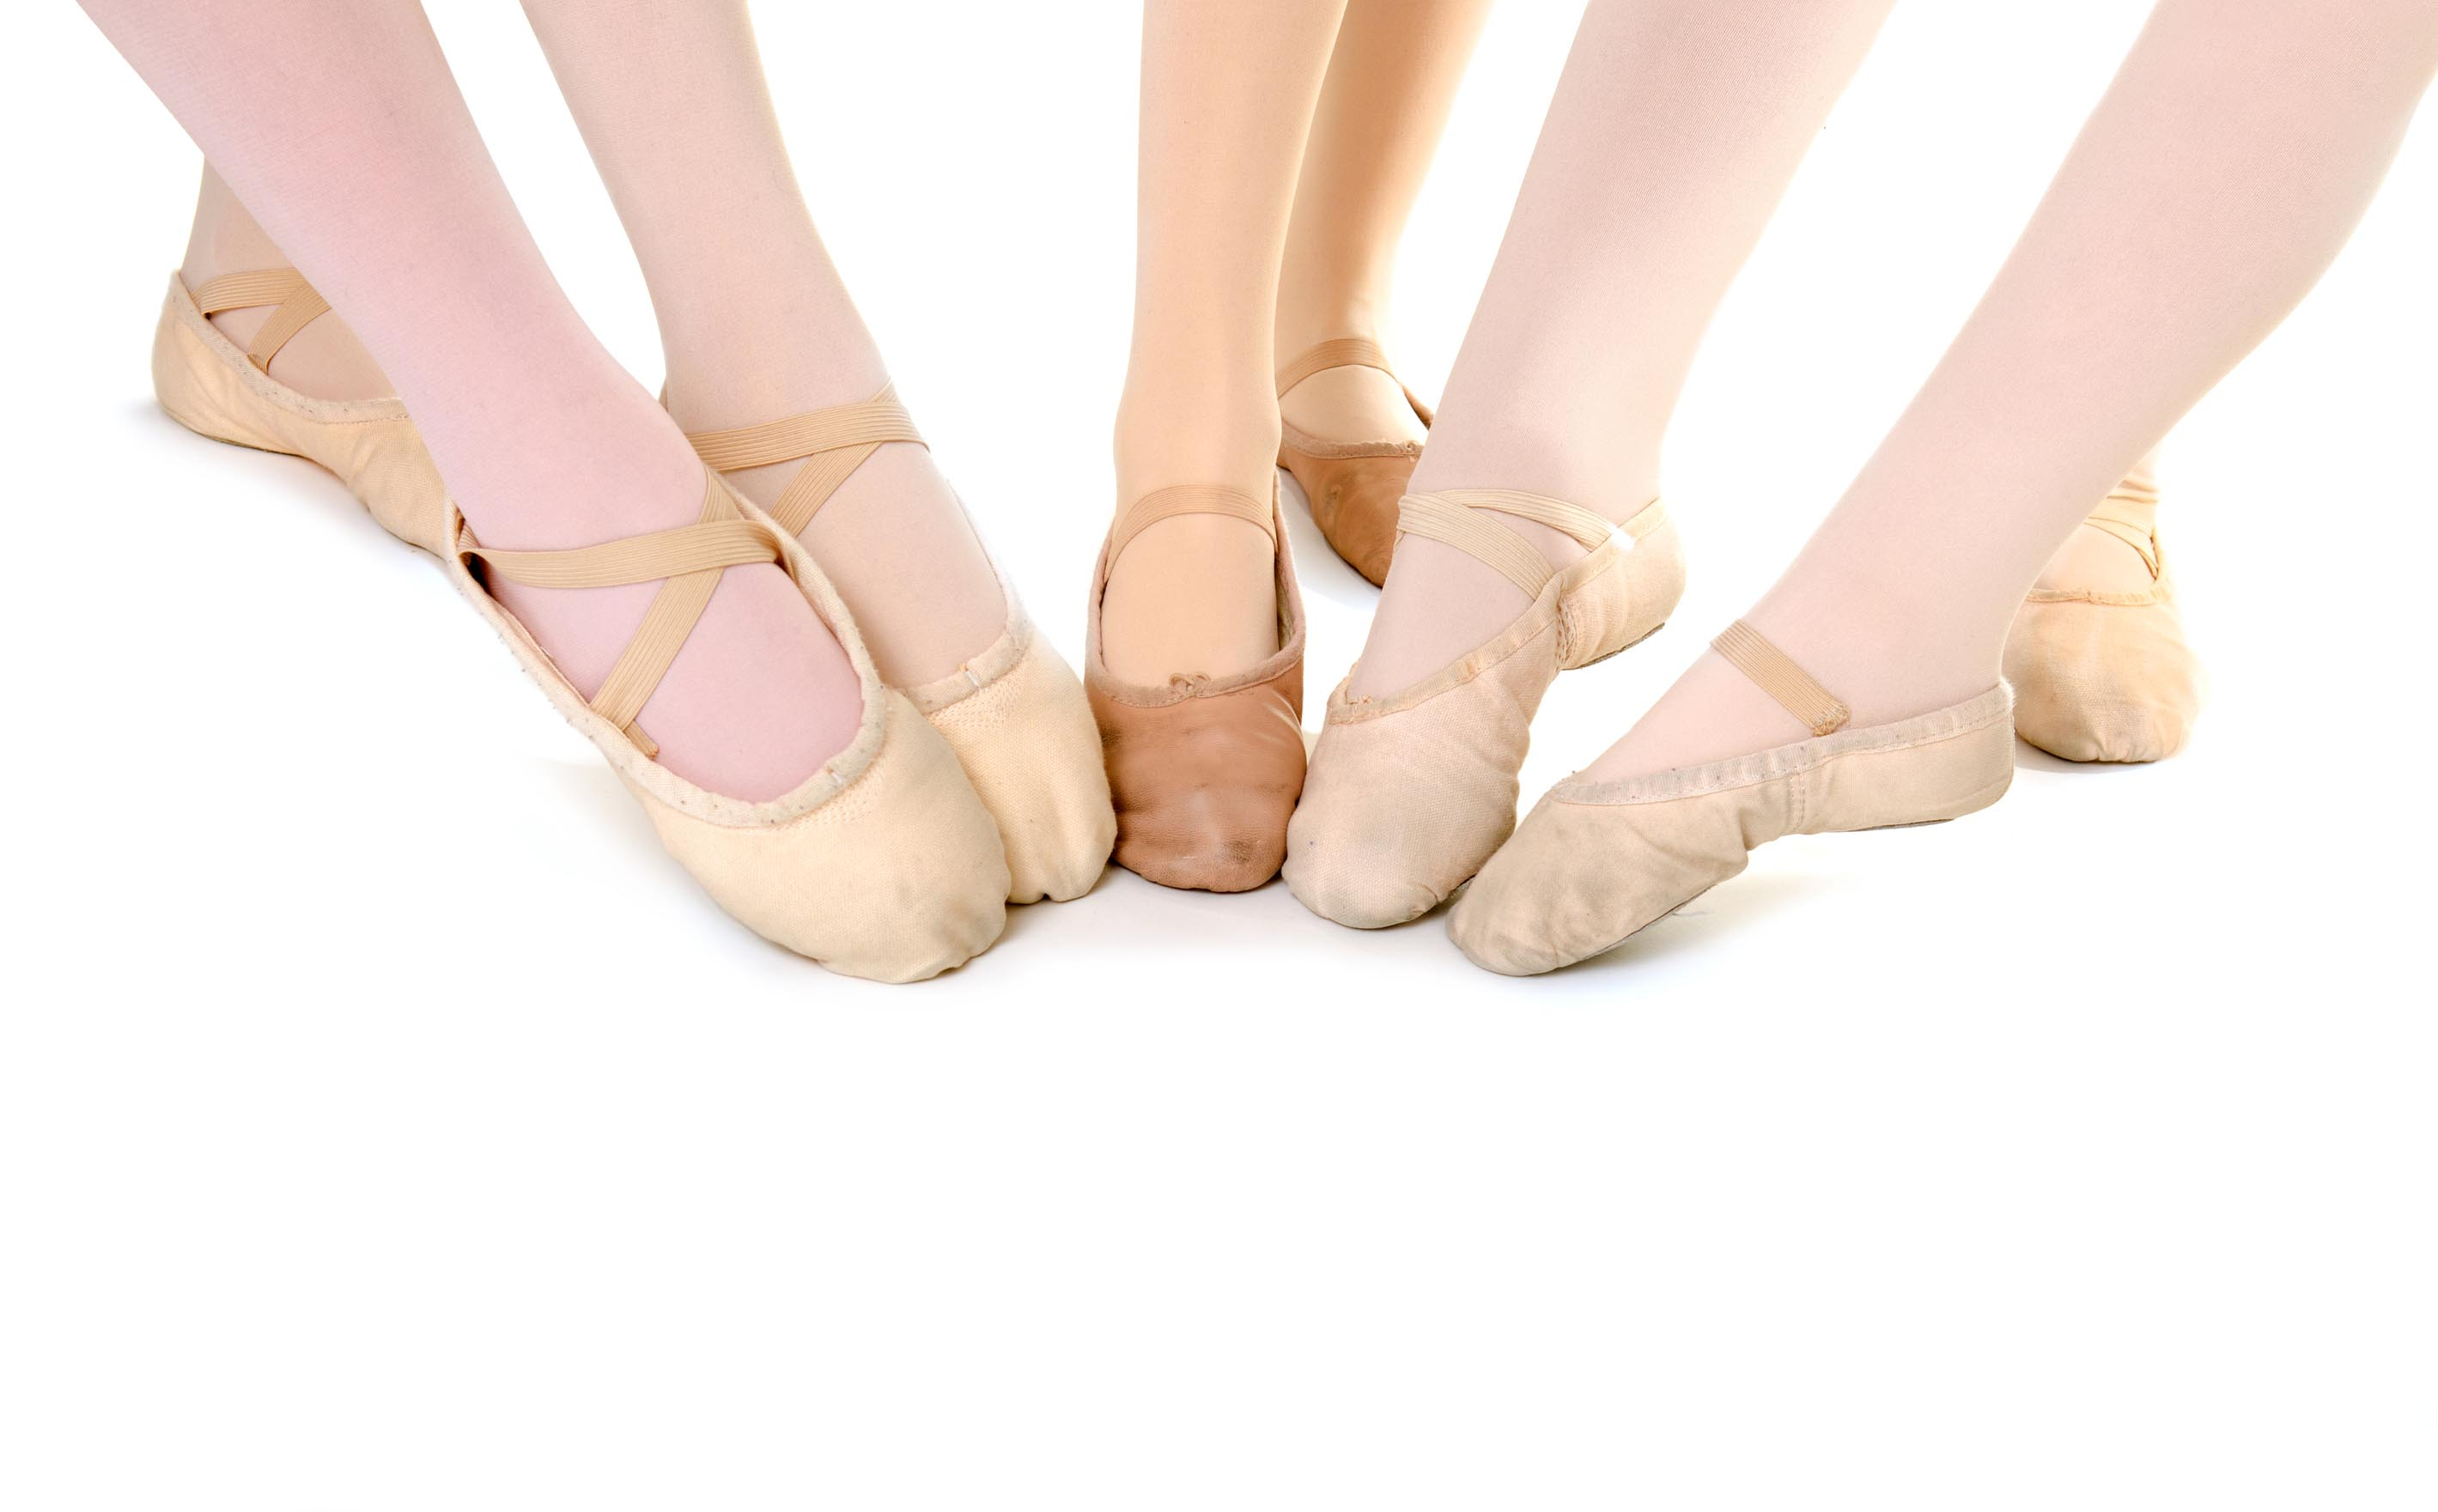 Choosing ballet slipper for dance class